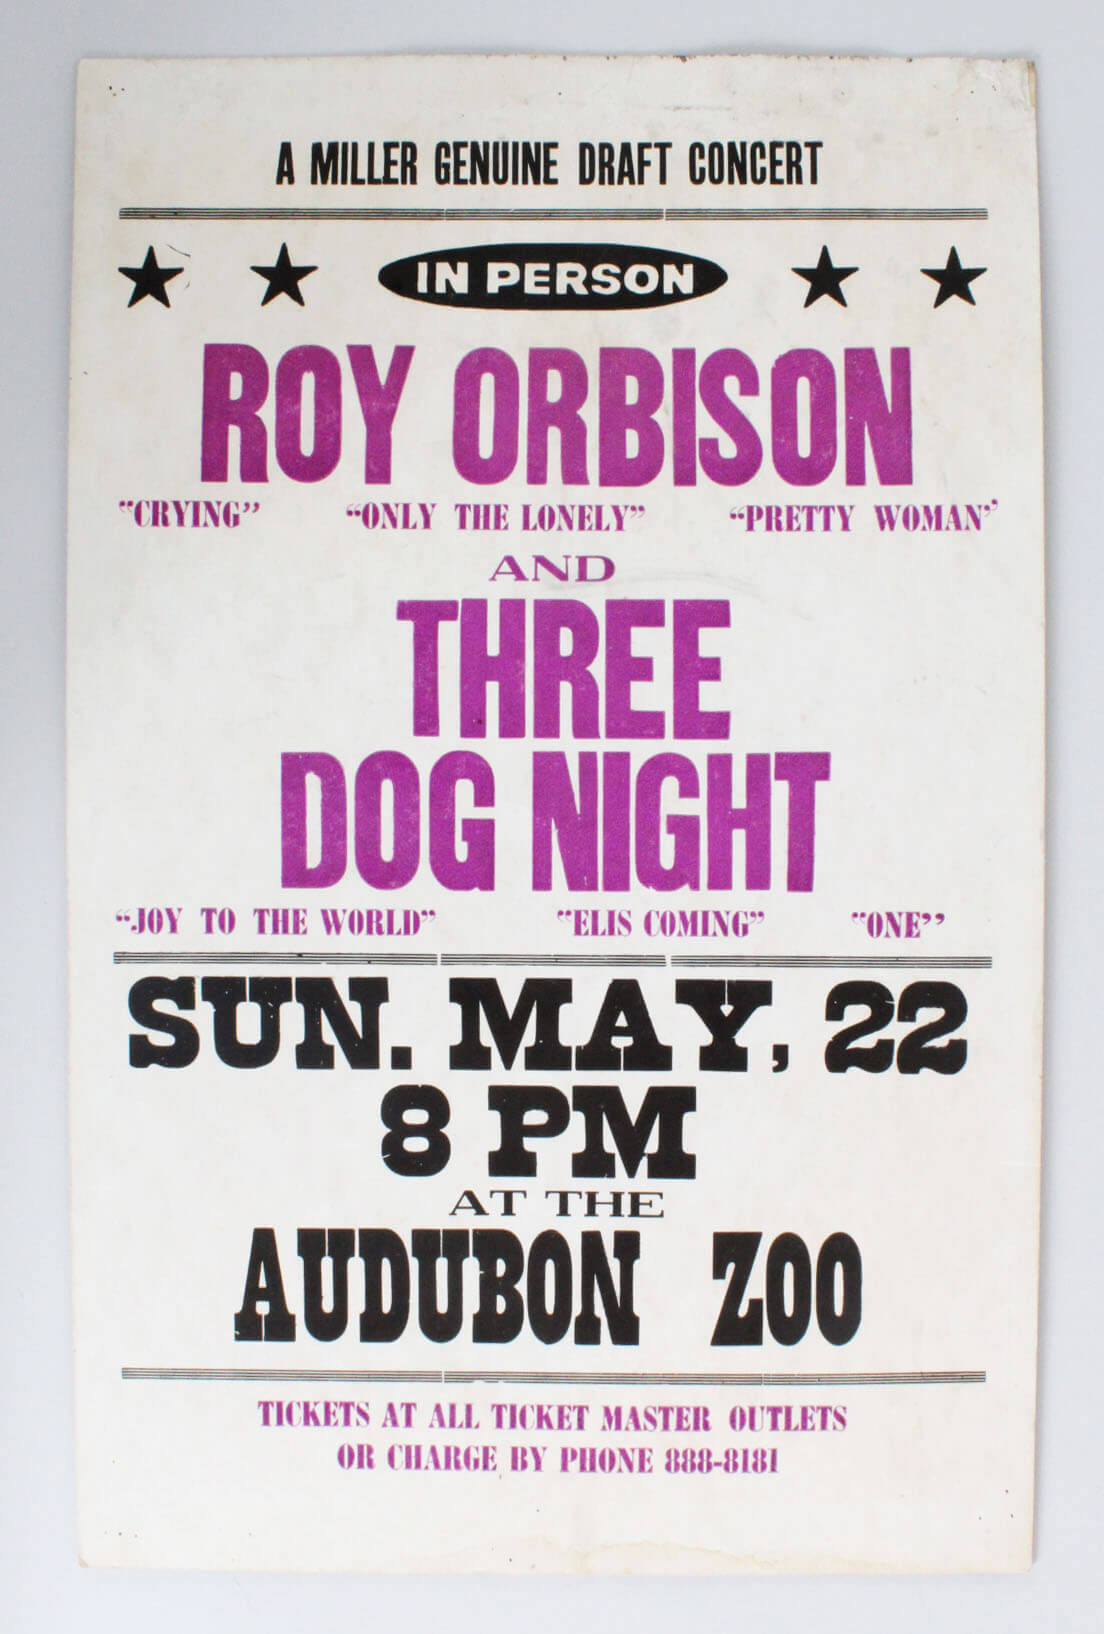 Roy Orbison & Three Dog Night 14 x 22 In Person Concert Window Card Poster